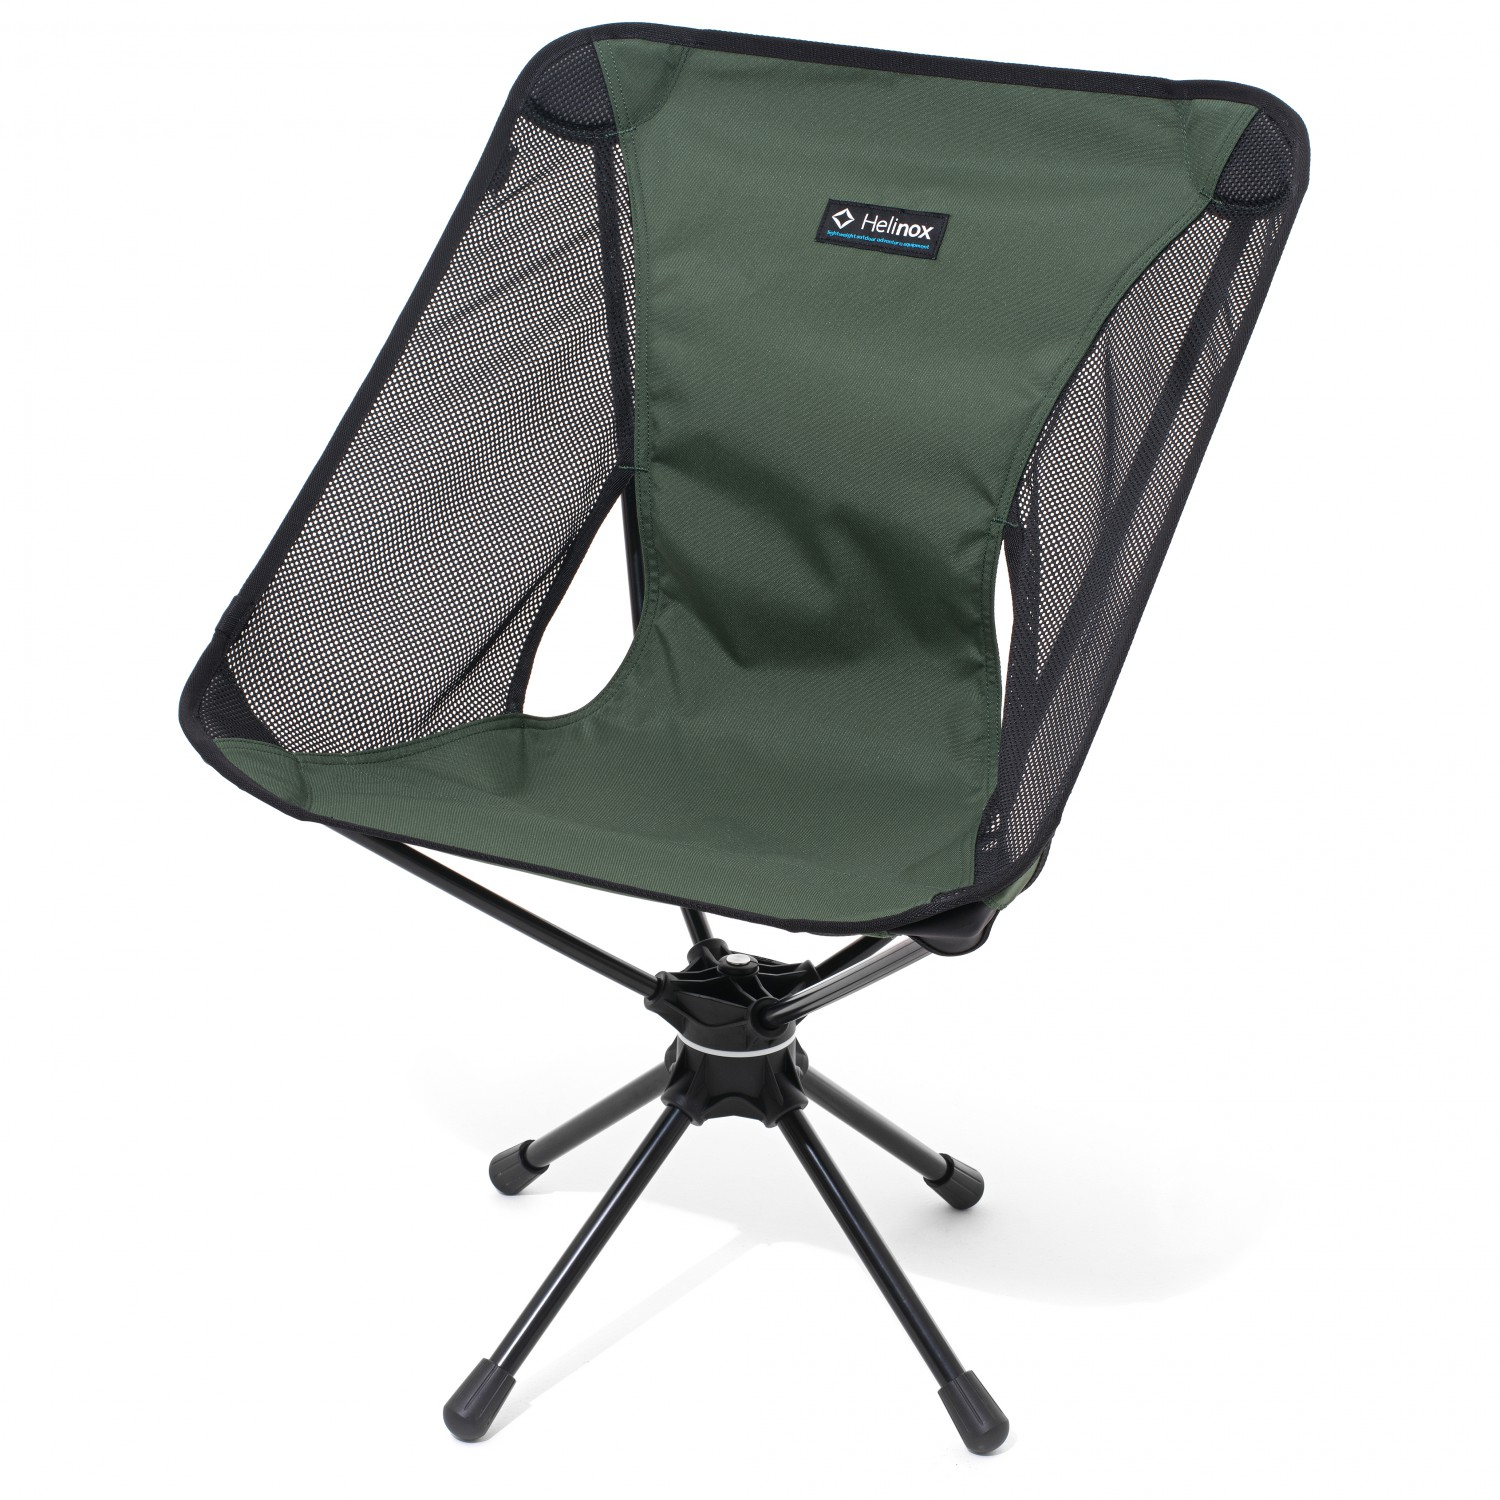 Helinox Swivel Chair  Camping Chair  Free UK Delivery